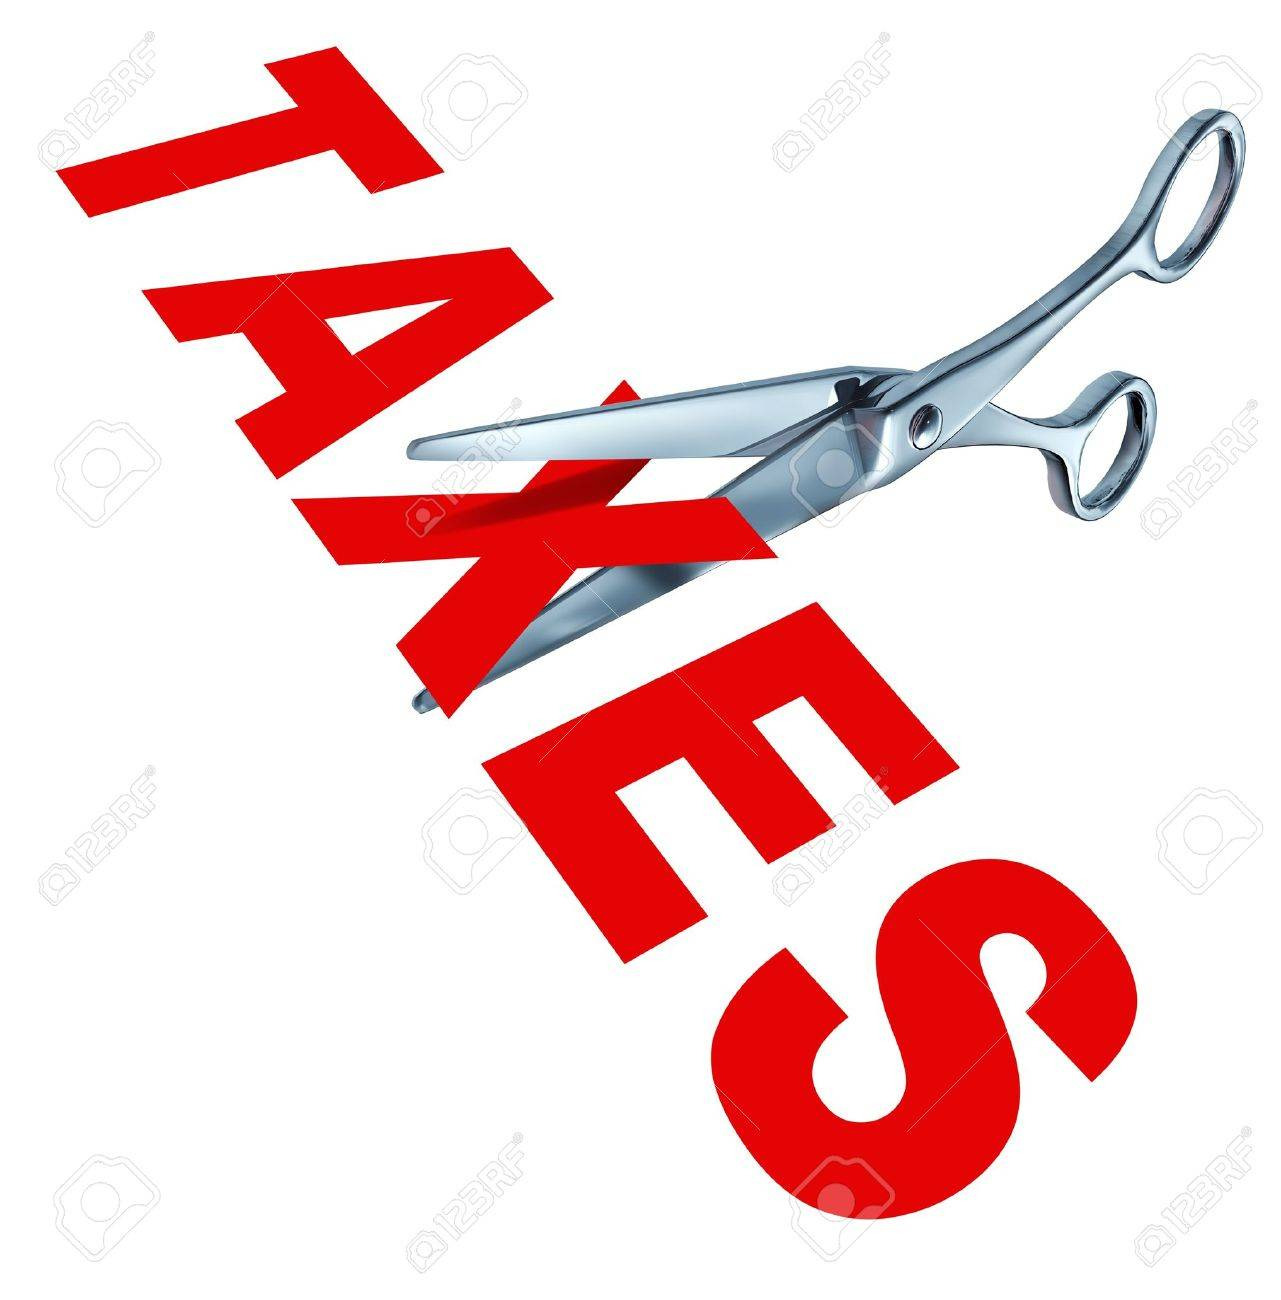 Tax cut and cutting taxes represented by metal scissors slashing the word taxes to show the concept of government political policy and campaign promisis to reduce the tax rate for the wealthy and the middle class tax payers. Stock Photo - 10792766